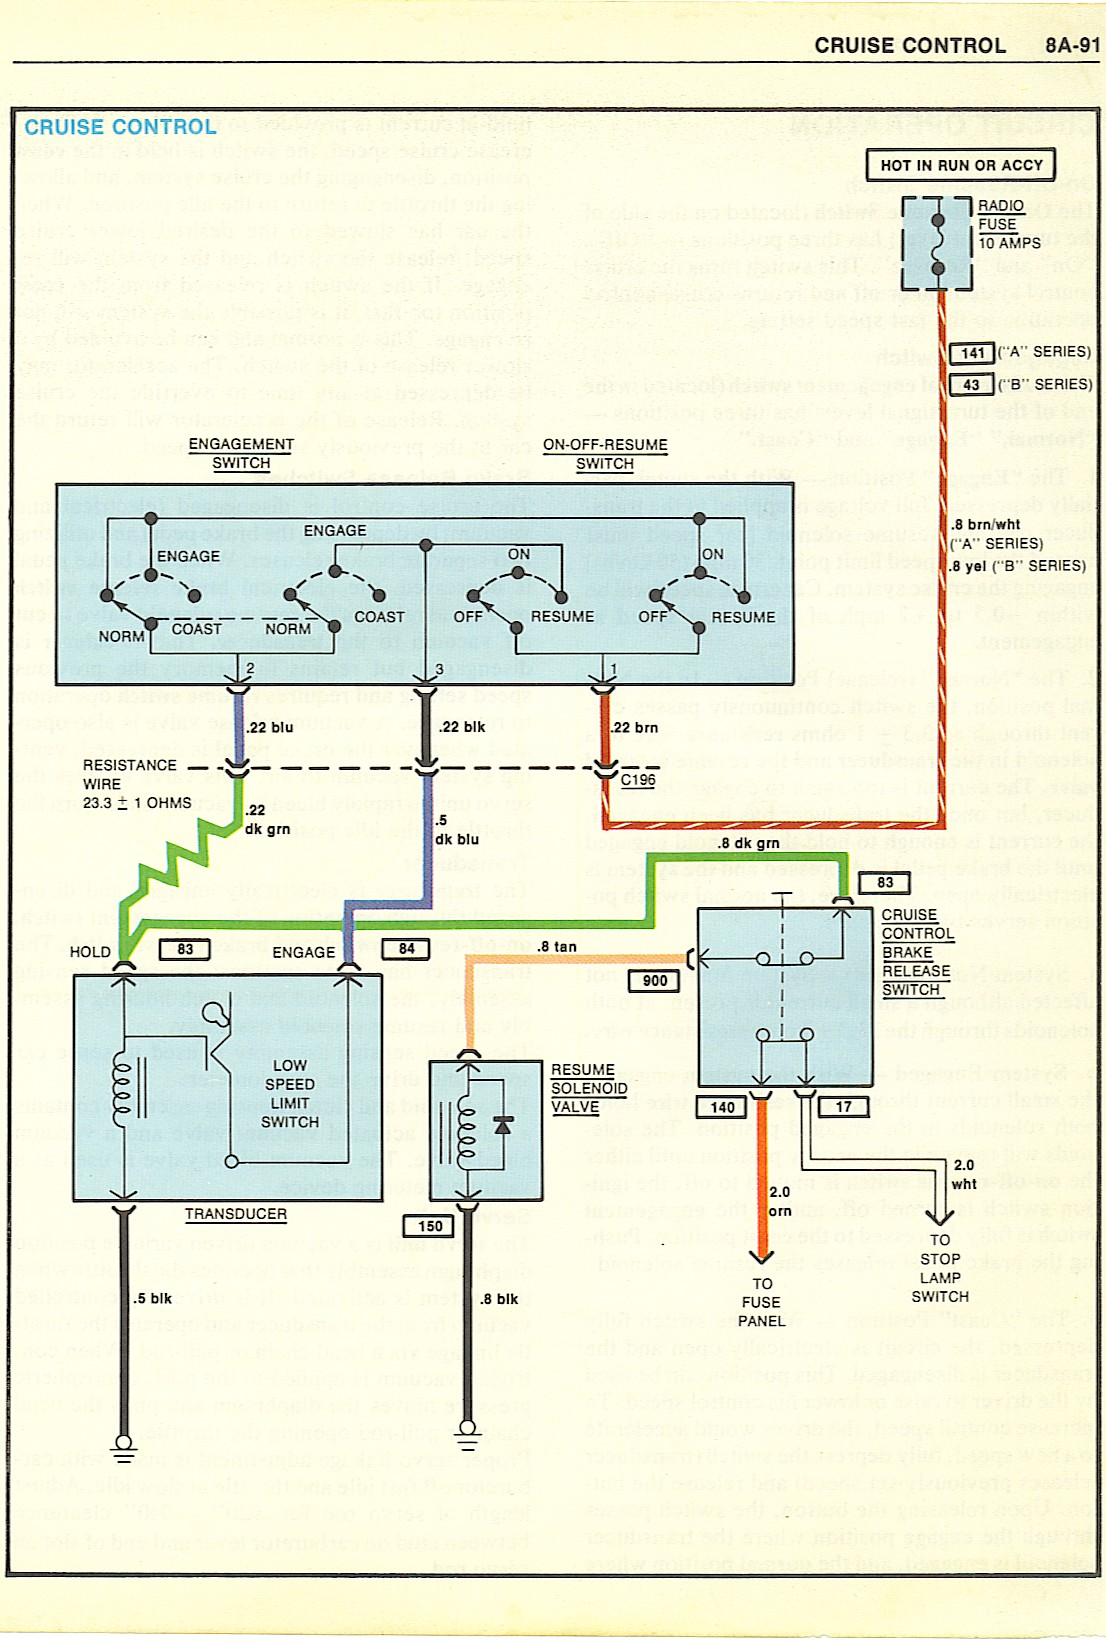 hight resolution of 1981 kenworth wiring diagram simple wiring diagram kenworth truck wiring diagrams kenworth wiper wiring diagrams